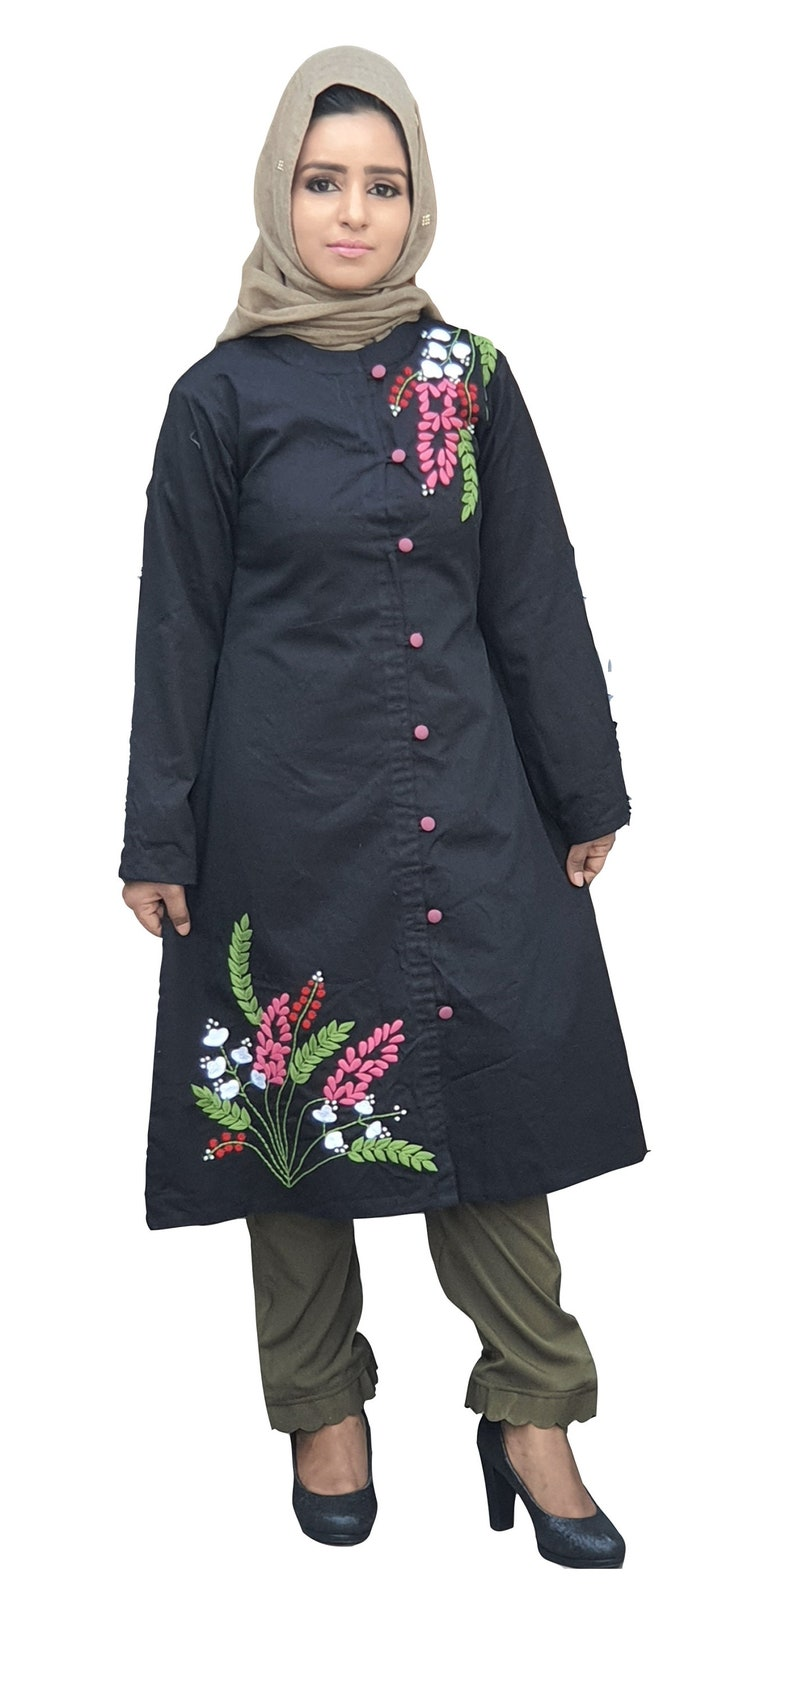 Tunic pants floral embroidered 100/% cotton set.